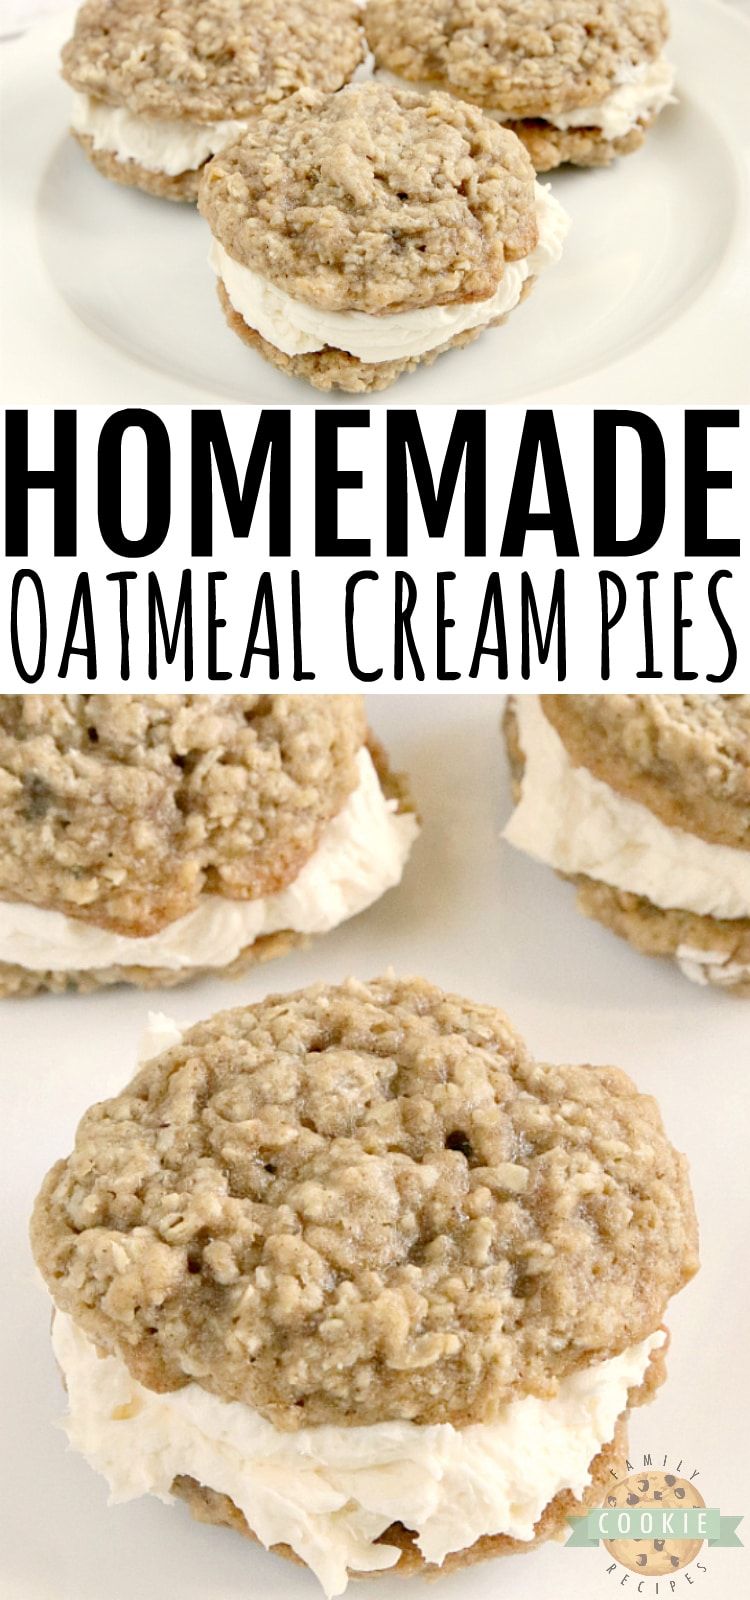 Homemade Oatmeal Cream Pies are made with a delicious creamy filling that is sandwiched between two soft and chewy oatmeal cookies. Even better than the store-bought variety that we all know and love! via @familycookierecipes